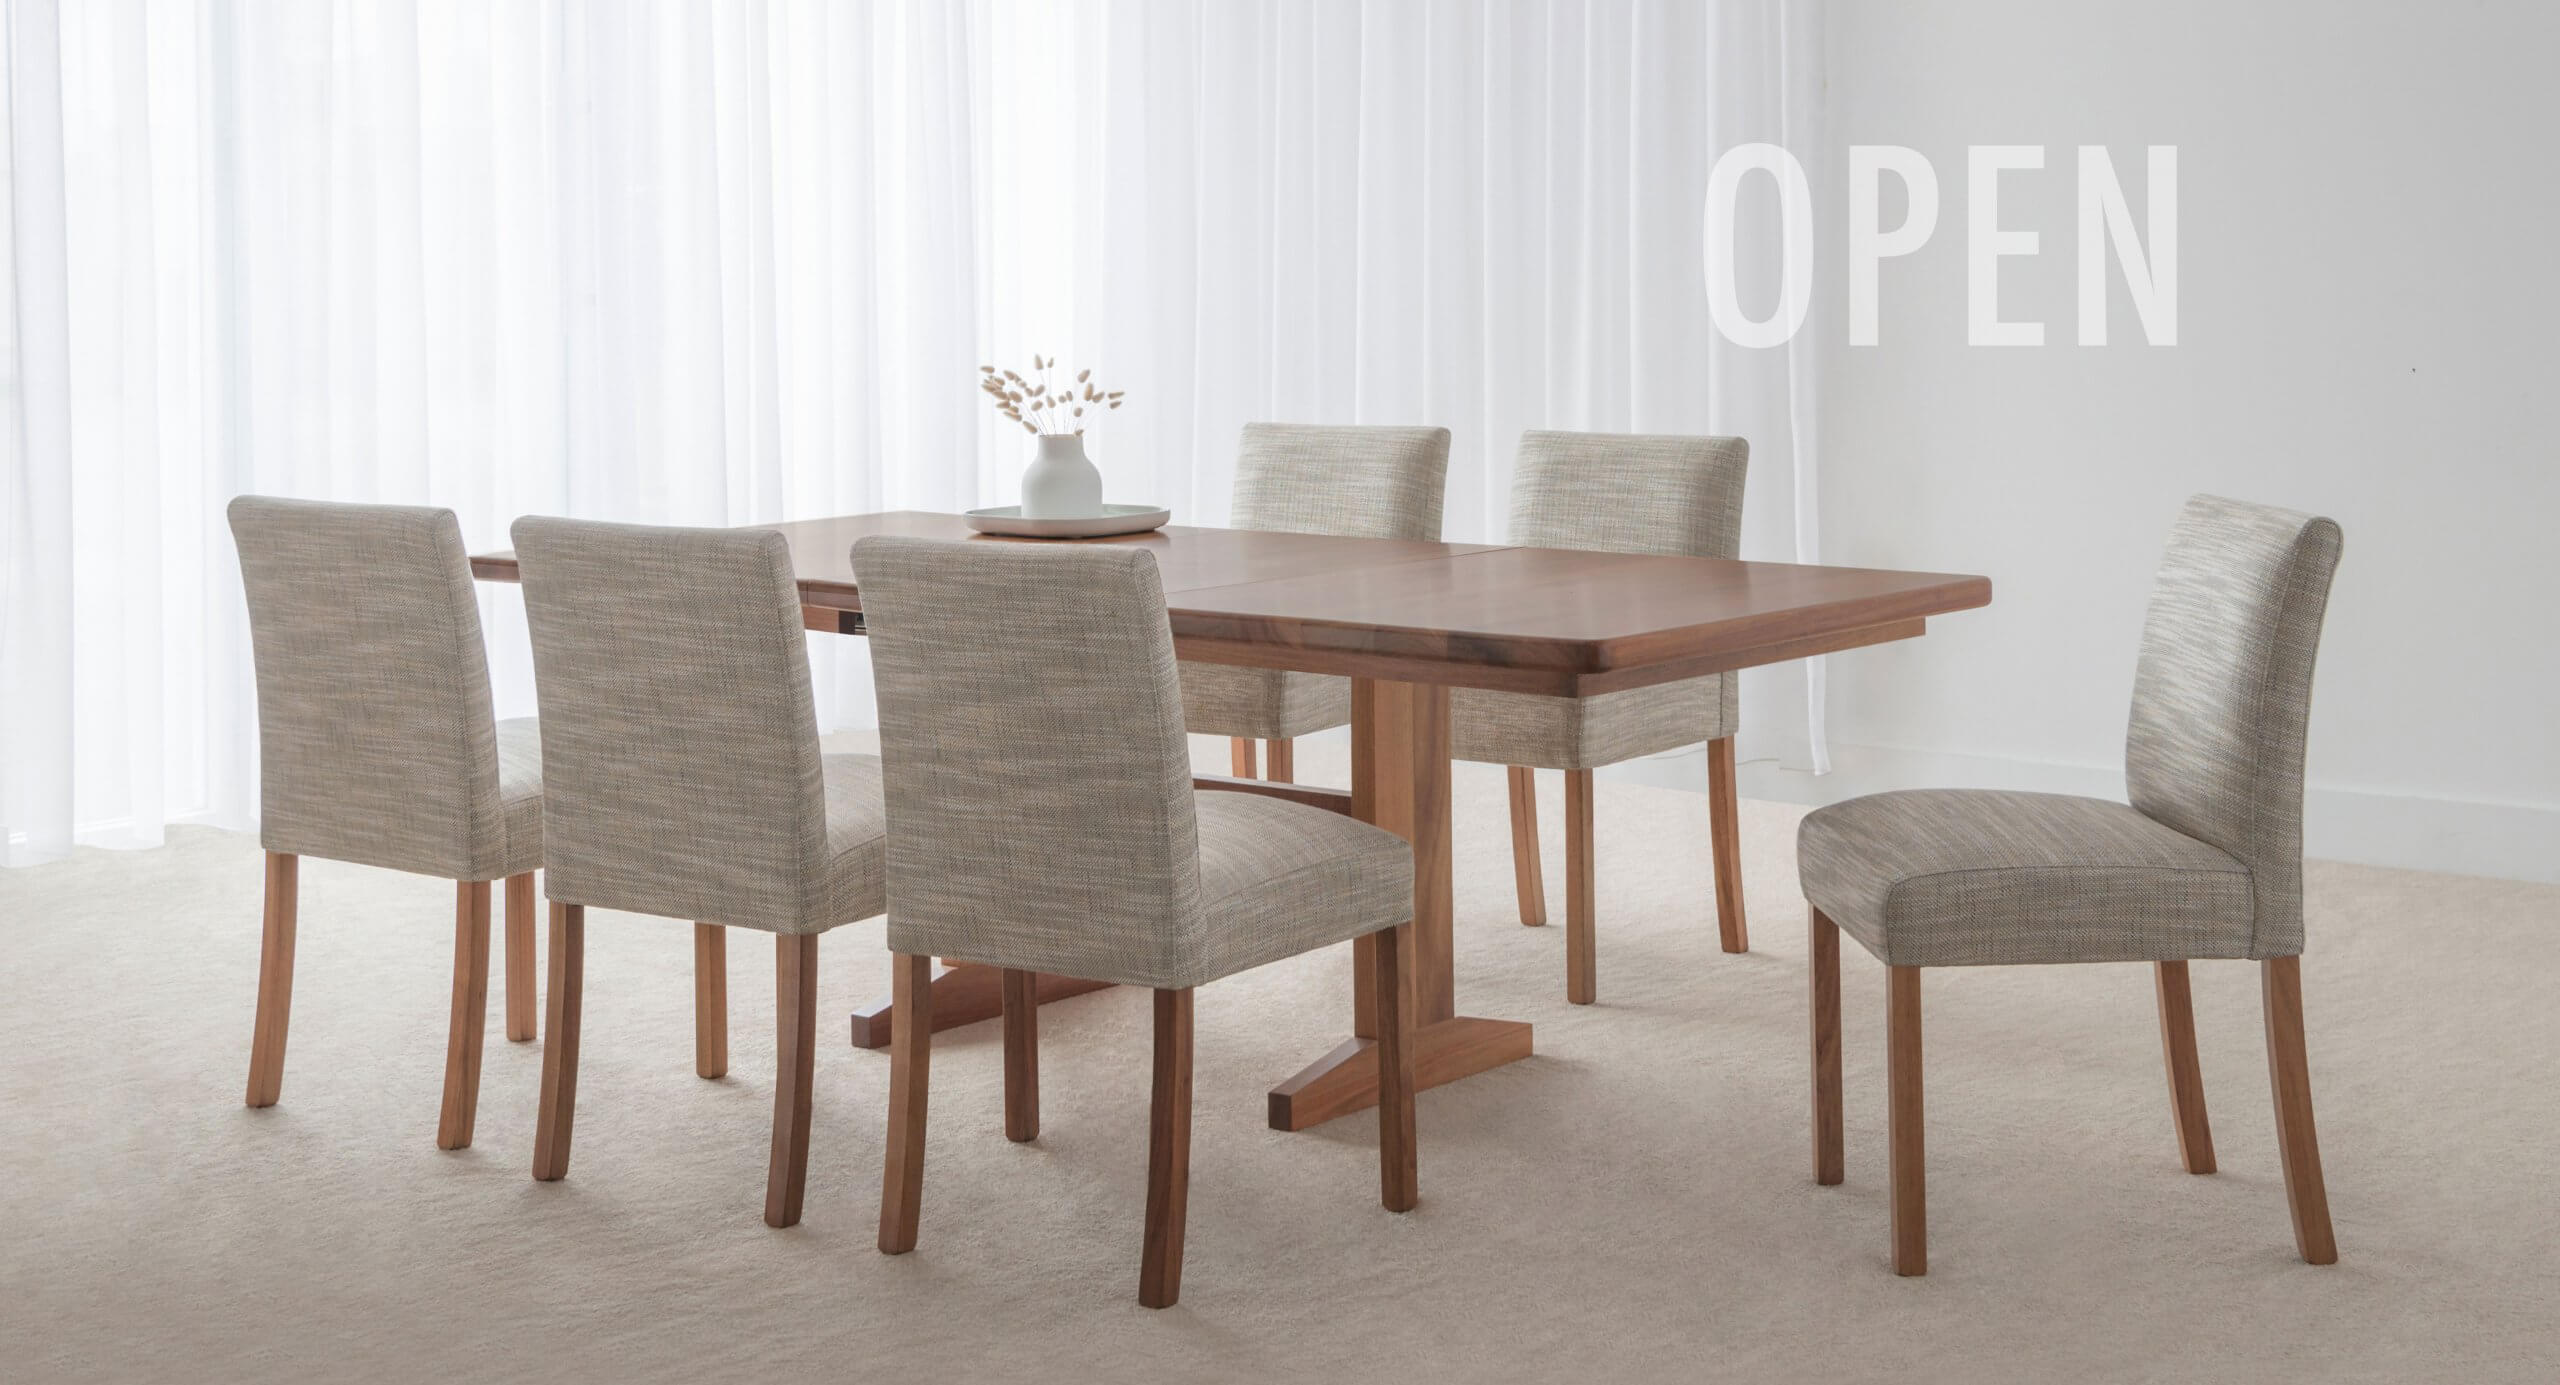 extendable dining table made in blackwood timber with upholstered fabric chairs